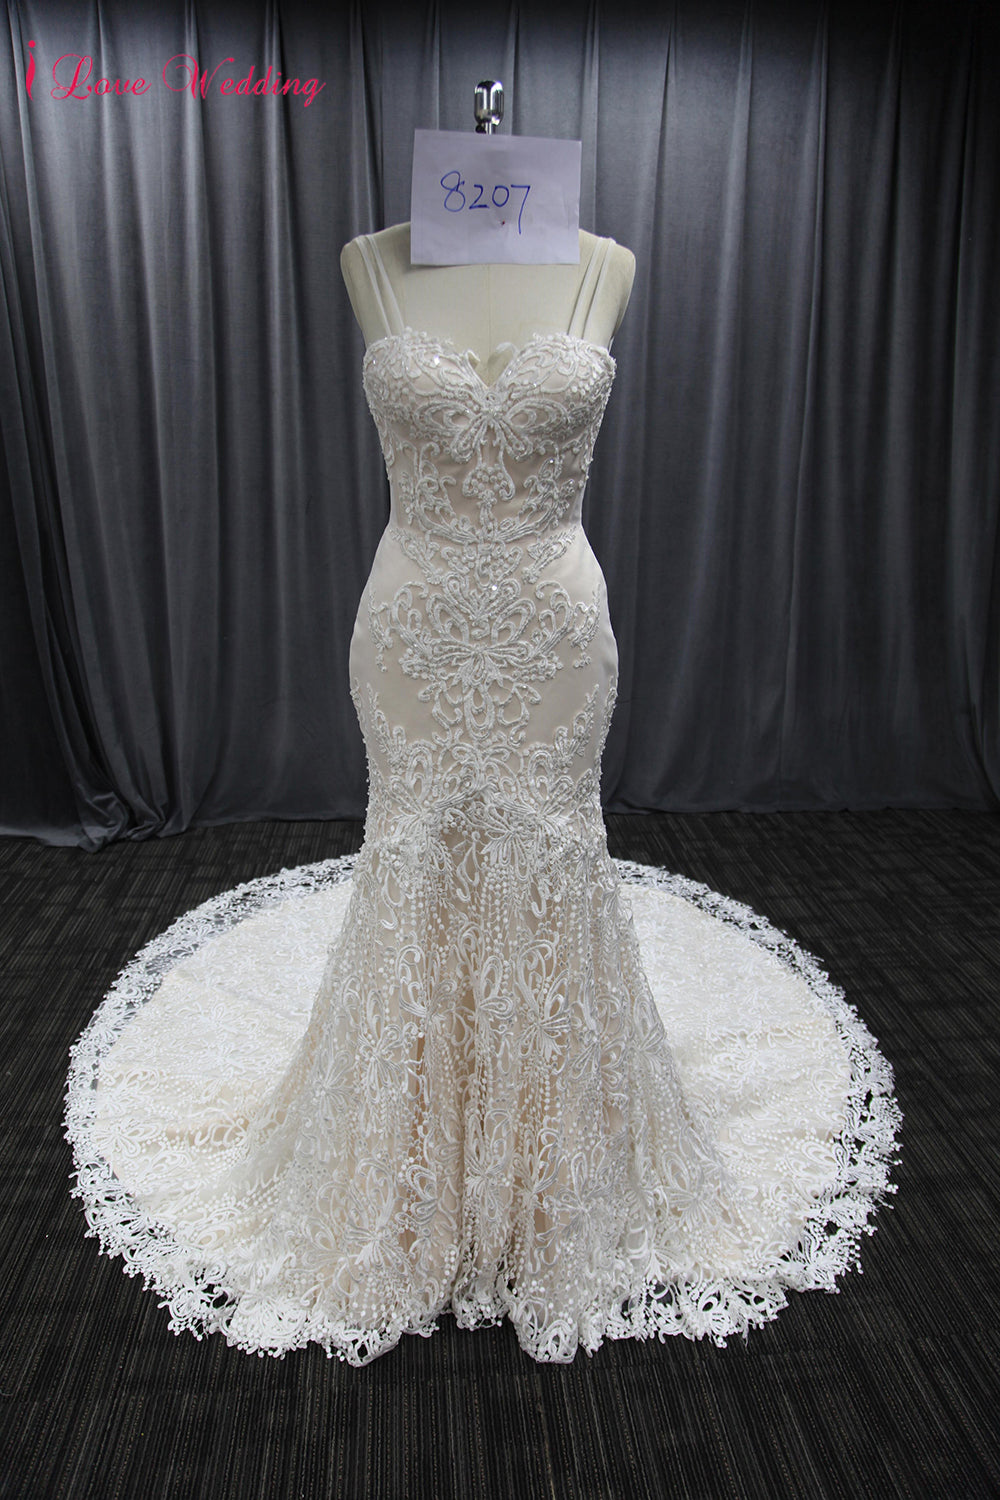 2018 vintage lace wedding gown sweetheart neckline sexy backless 2018 vintage lace wedding gown sweetheart neckline sexy backless bridal wedding dresses long train woman marriage junglespirit Images